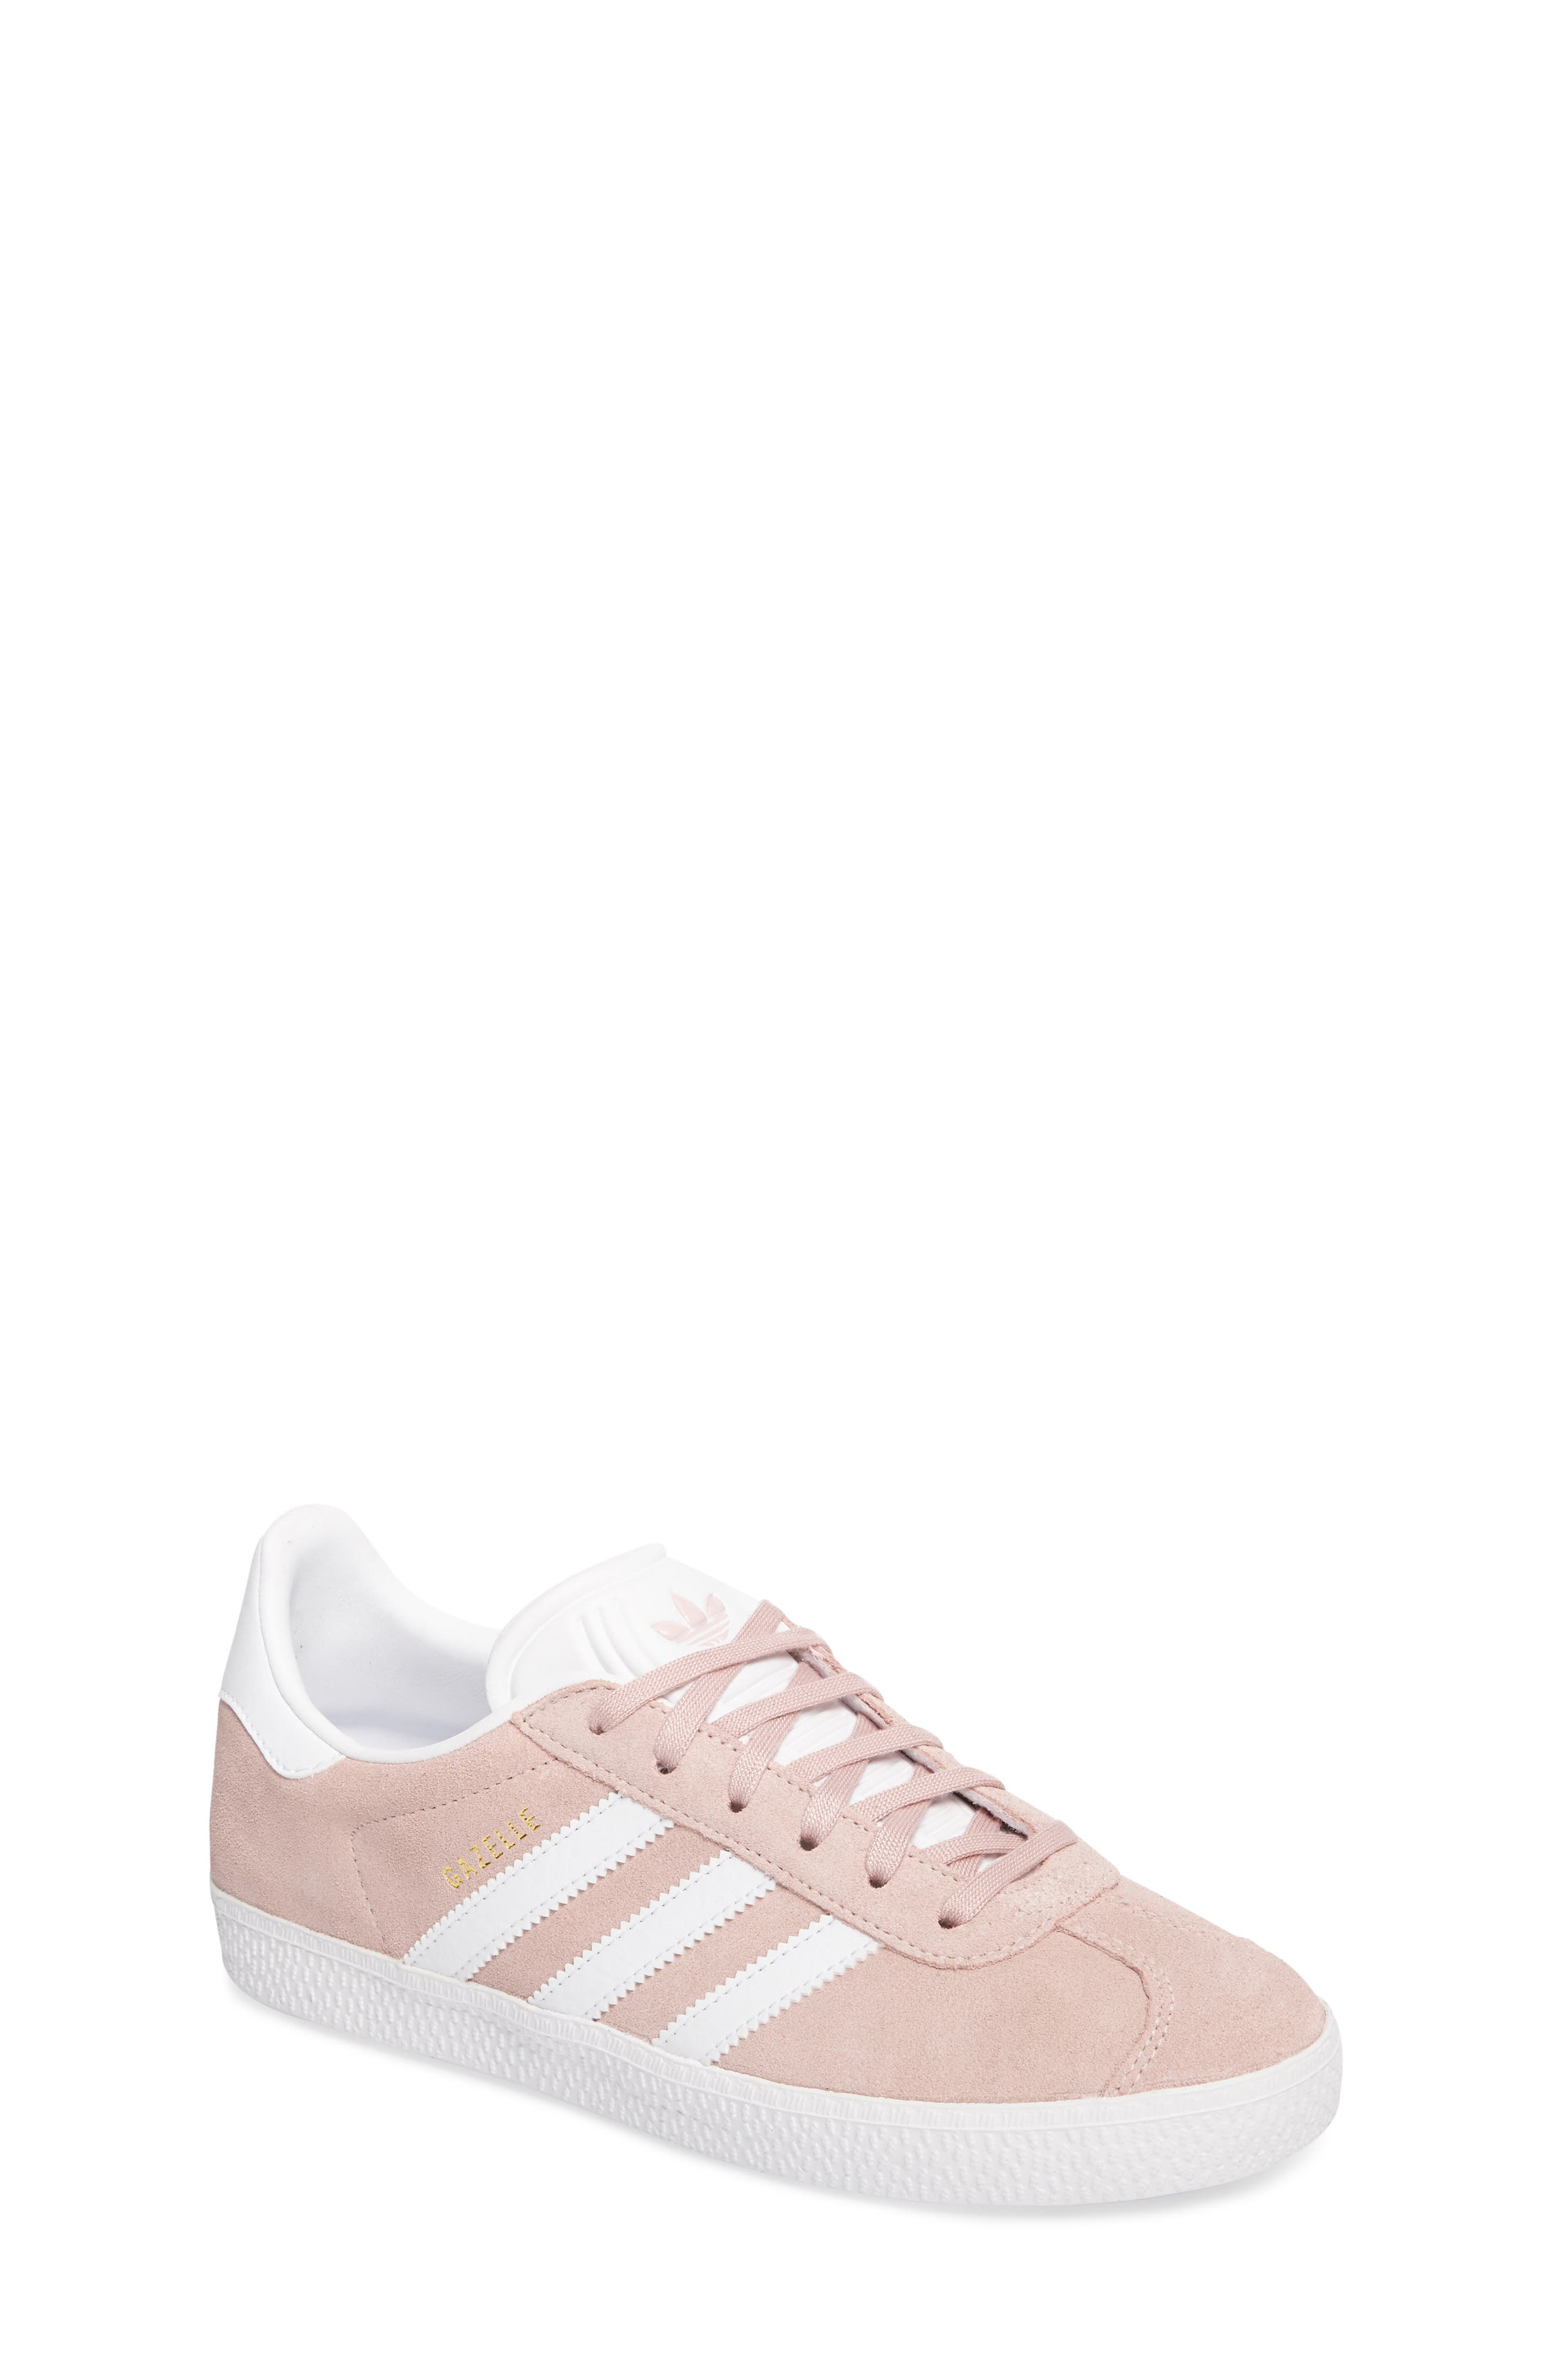 Gazelle Sneaker,                             Main thumbnail 1, color,                             682